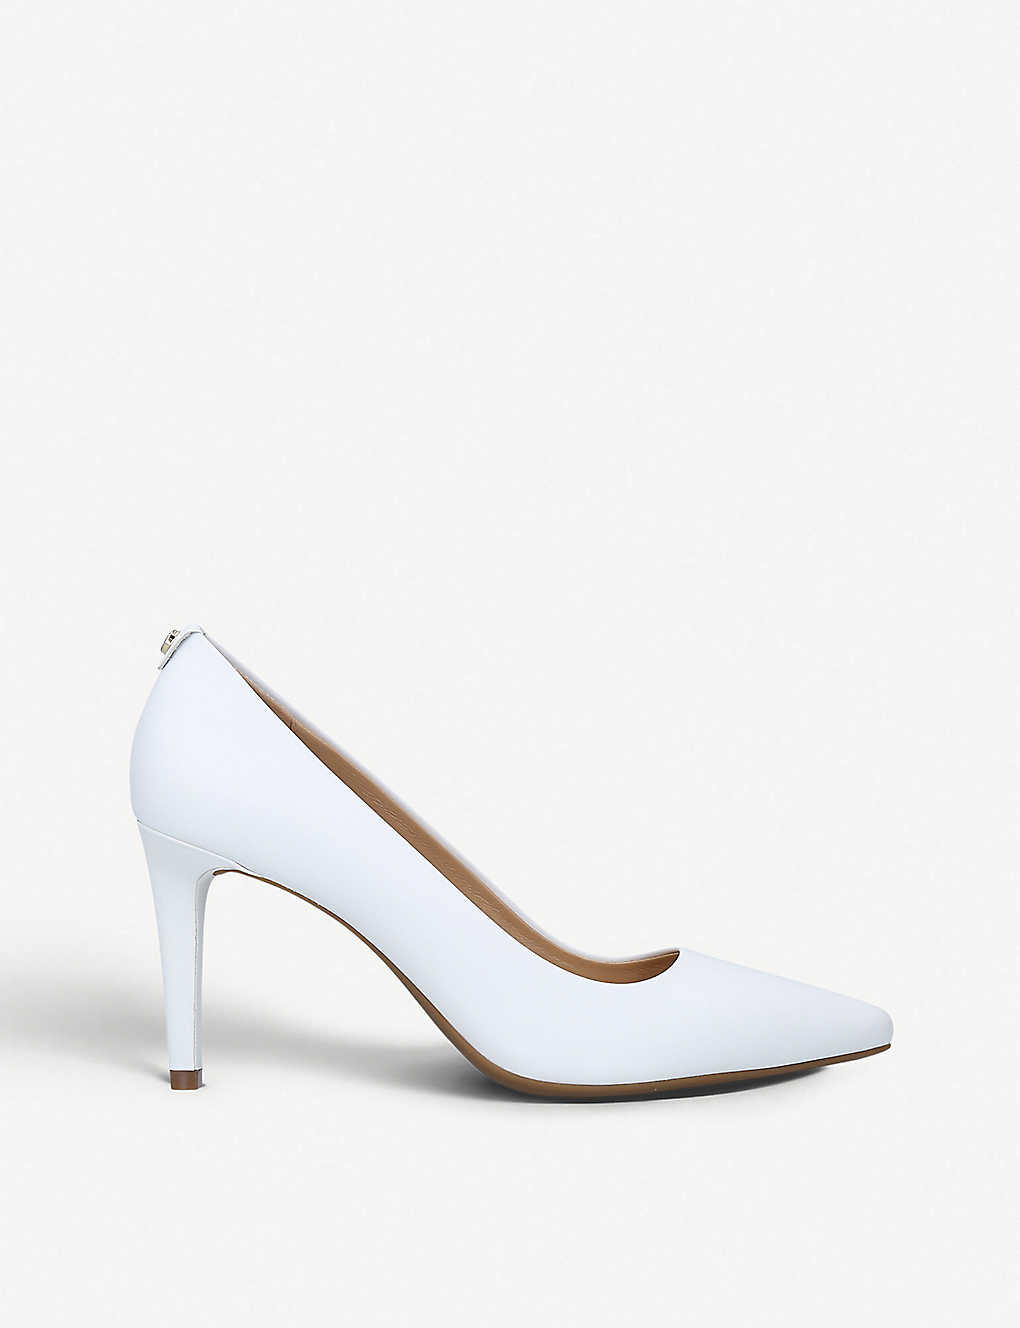 a8cc32e0d6 MICHAEL MICHAEL KORS - Dorothy Flex leather courts | Selfridges.com